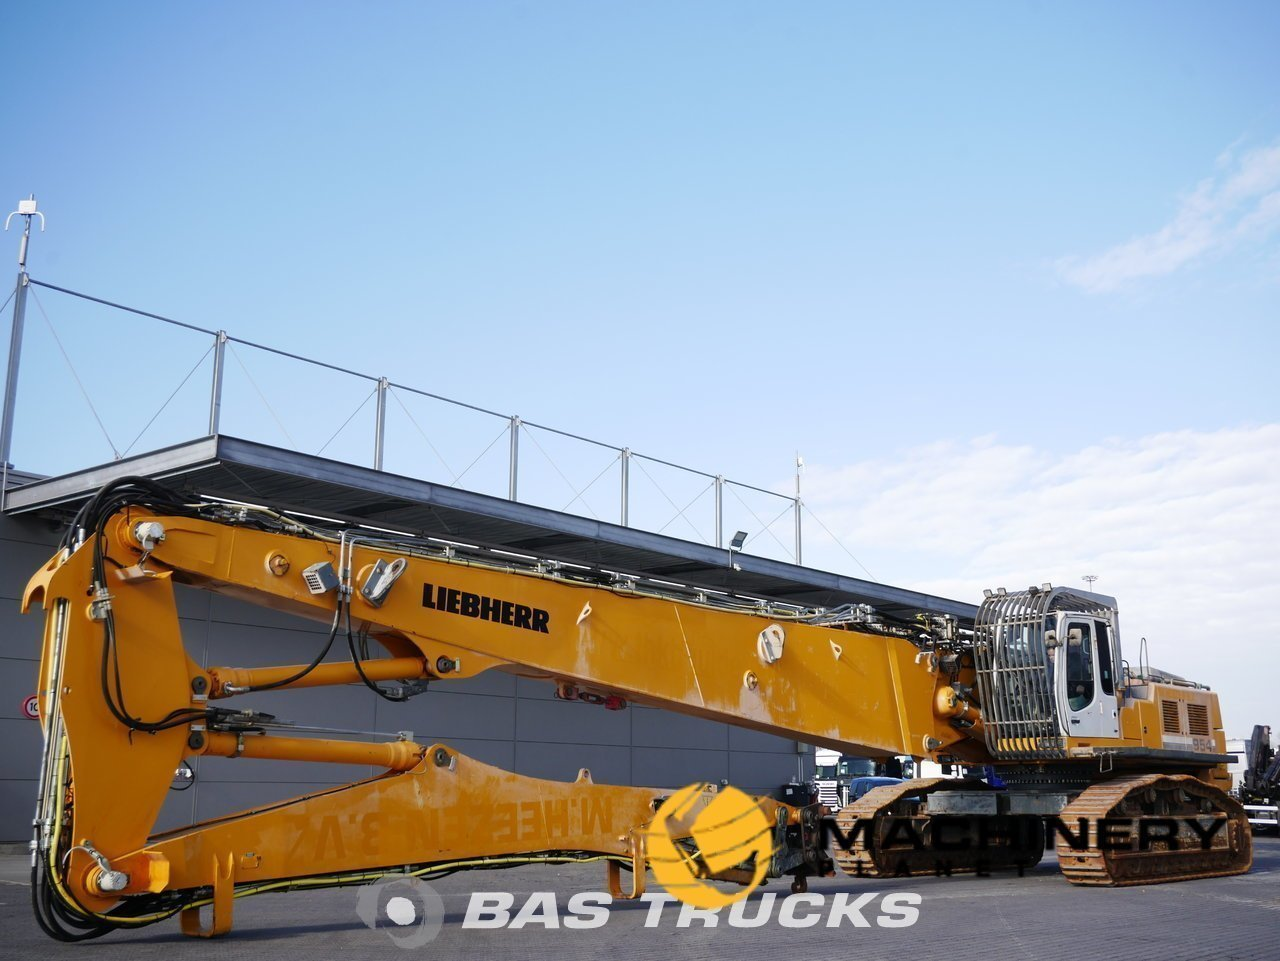 Used-Construction-equipment-Liebherr-R954C-V-HDW-UHD-Track-2009_148477_1-1554197522988_5ca32c12f13d5-1.jpg